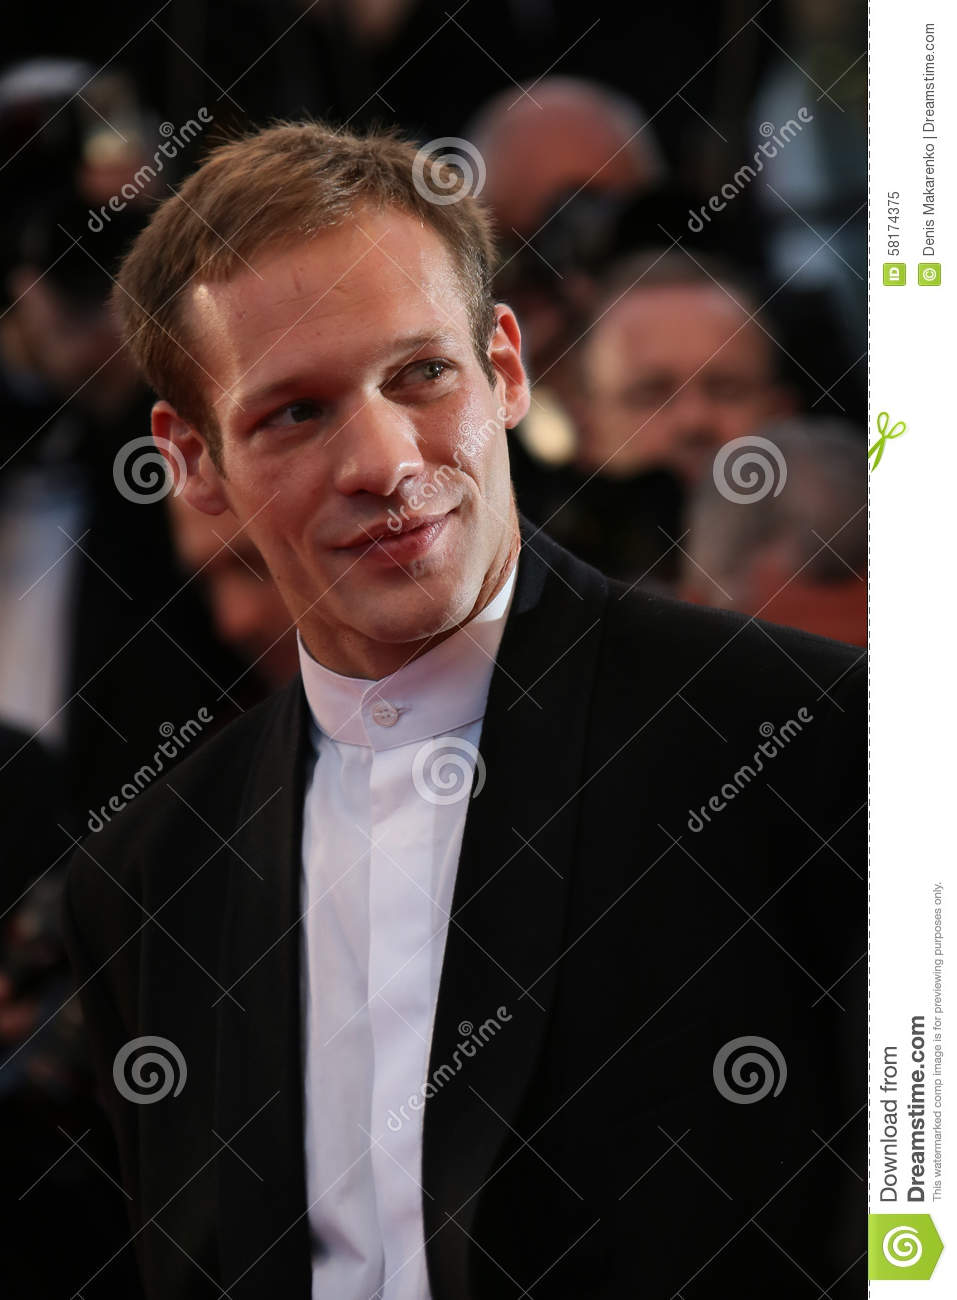 3 Paul Hamy Photos Free Royalty Free Stock Photos From Dreamstime